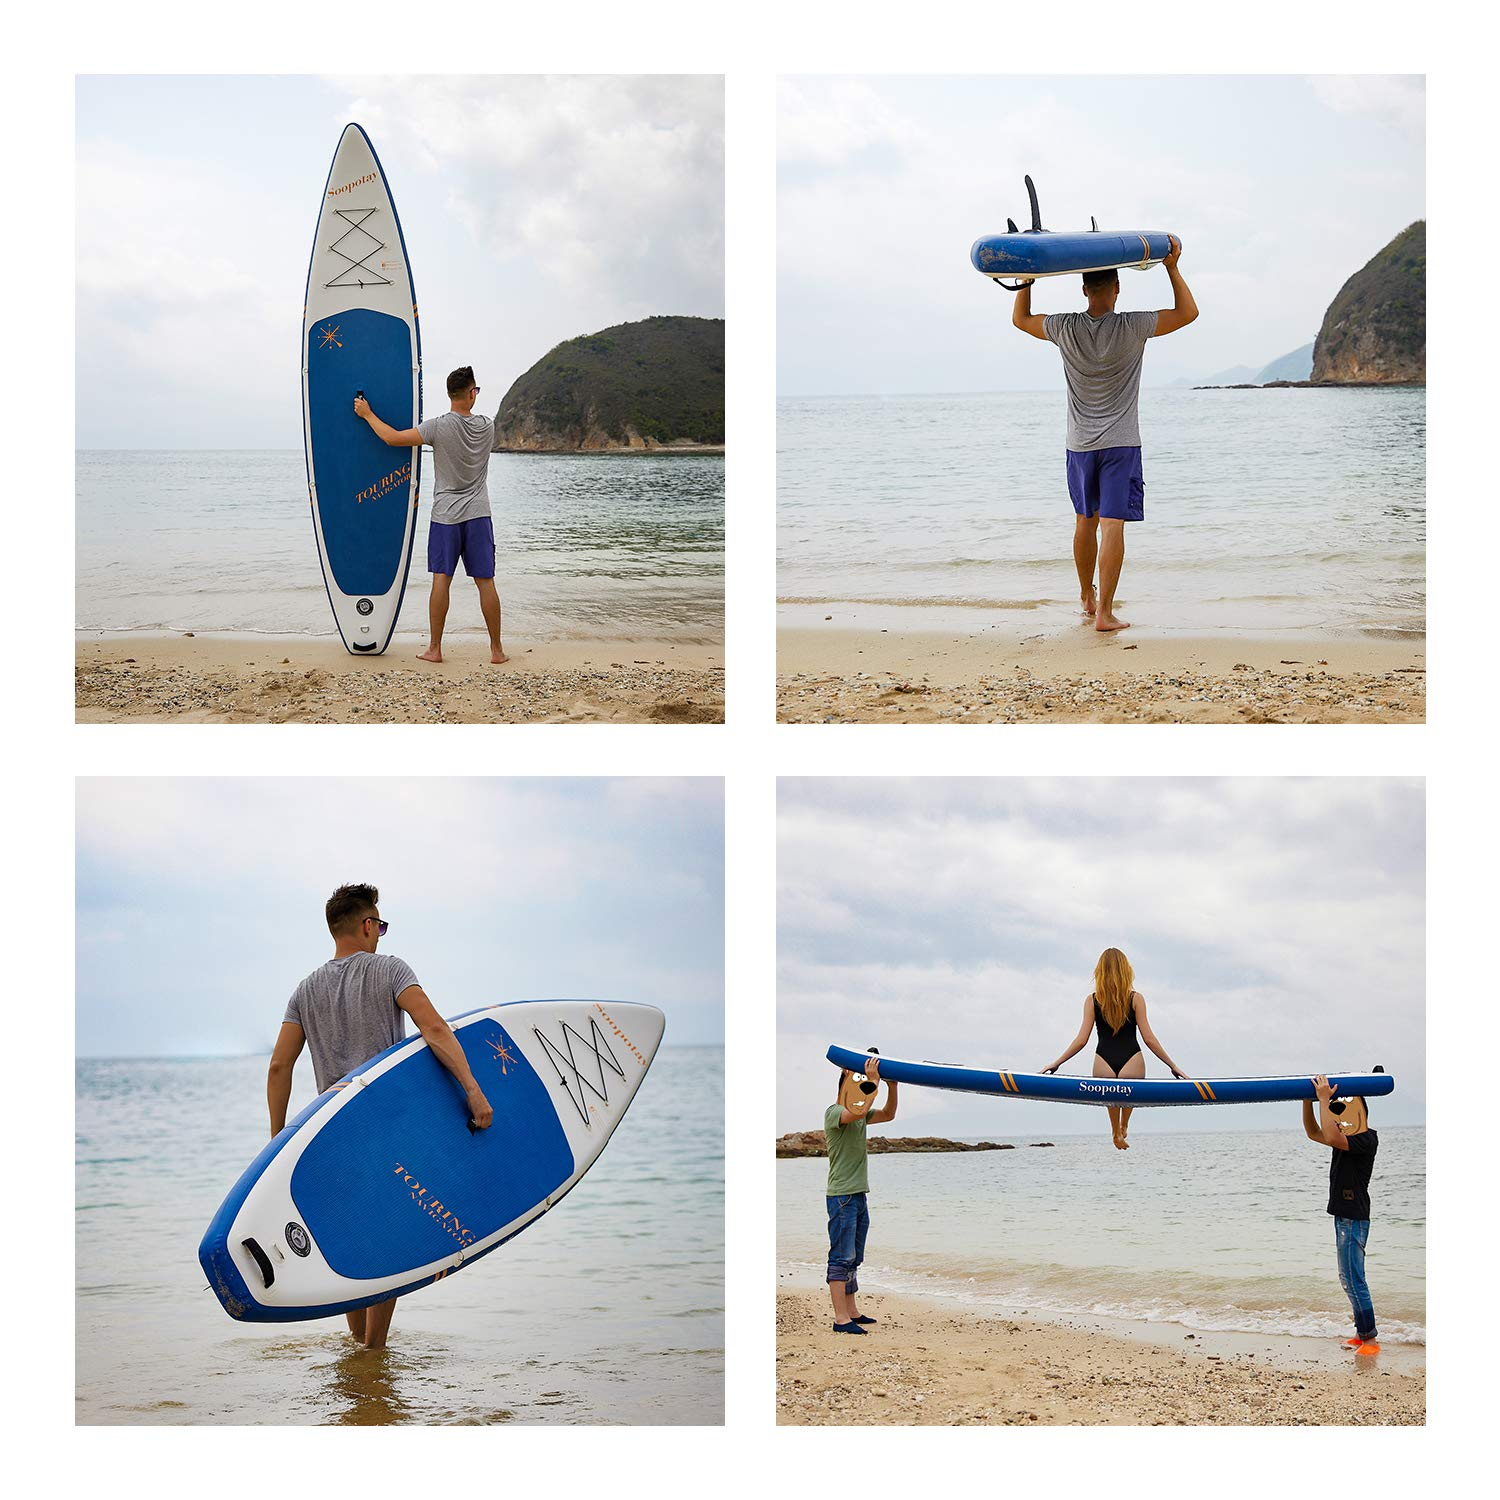 Inflatable SUP Stand Up Paddle Board, Inflatable SUP Board, iSUP Package with All Accessories (Racing-Navy Blue-12'6'' x 30'' x 6'') by Soopotay (Image #2)